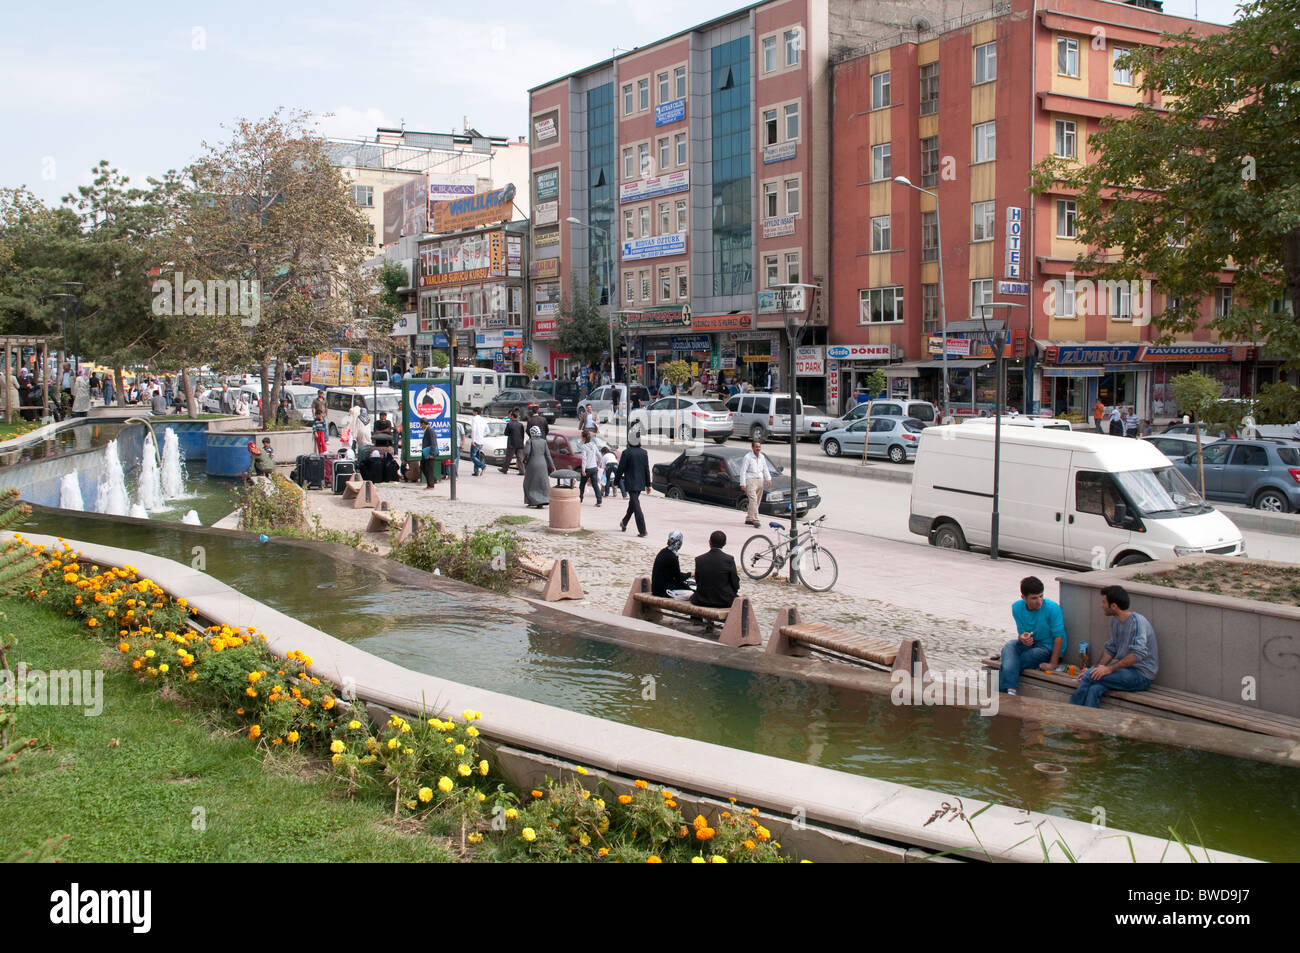 Iskele Caddesi, one of the main thoroughfares in the city of Van, in southeast Turkey. - Stock Image